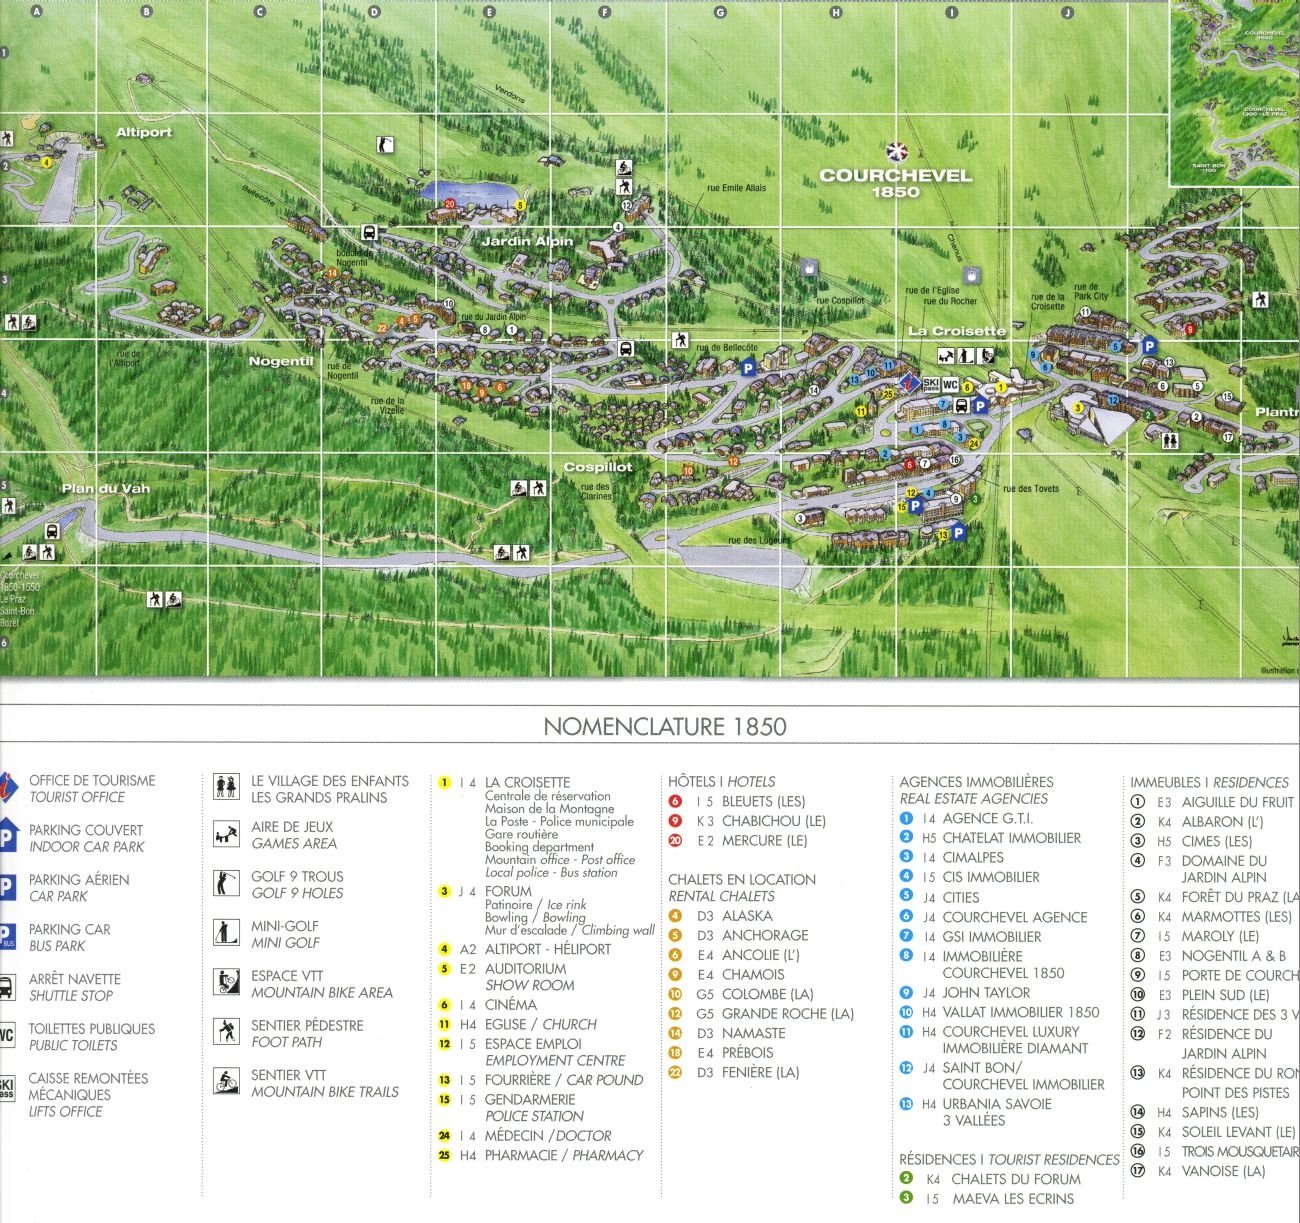 Courchevel 1850 Resort Map